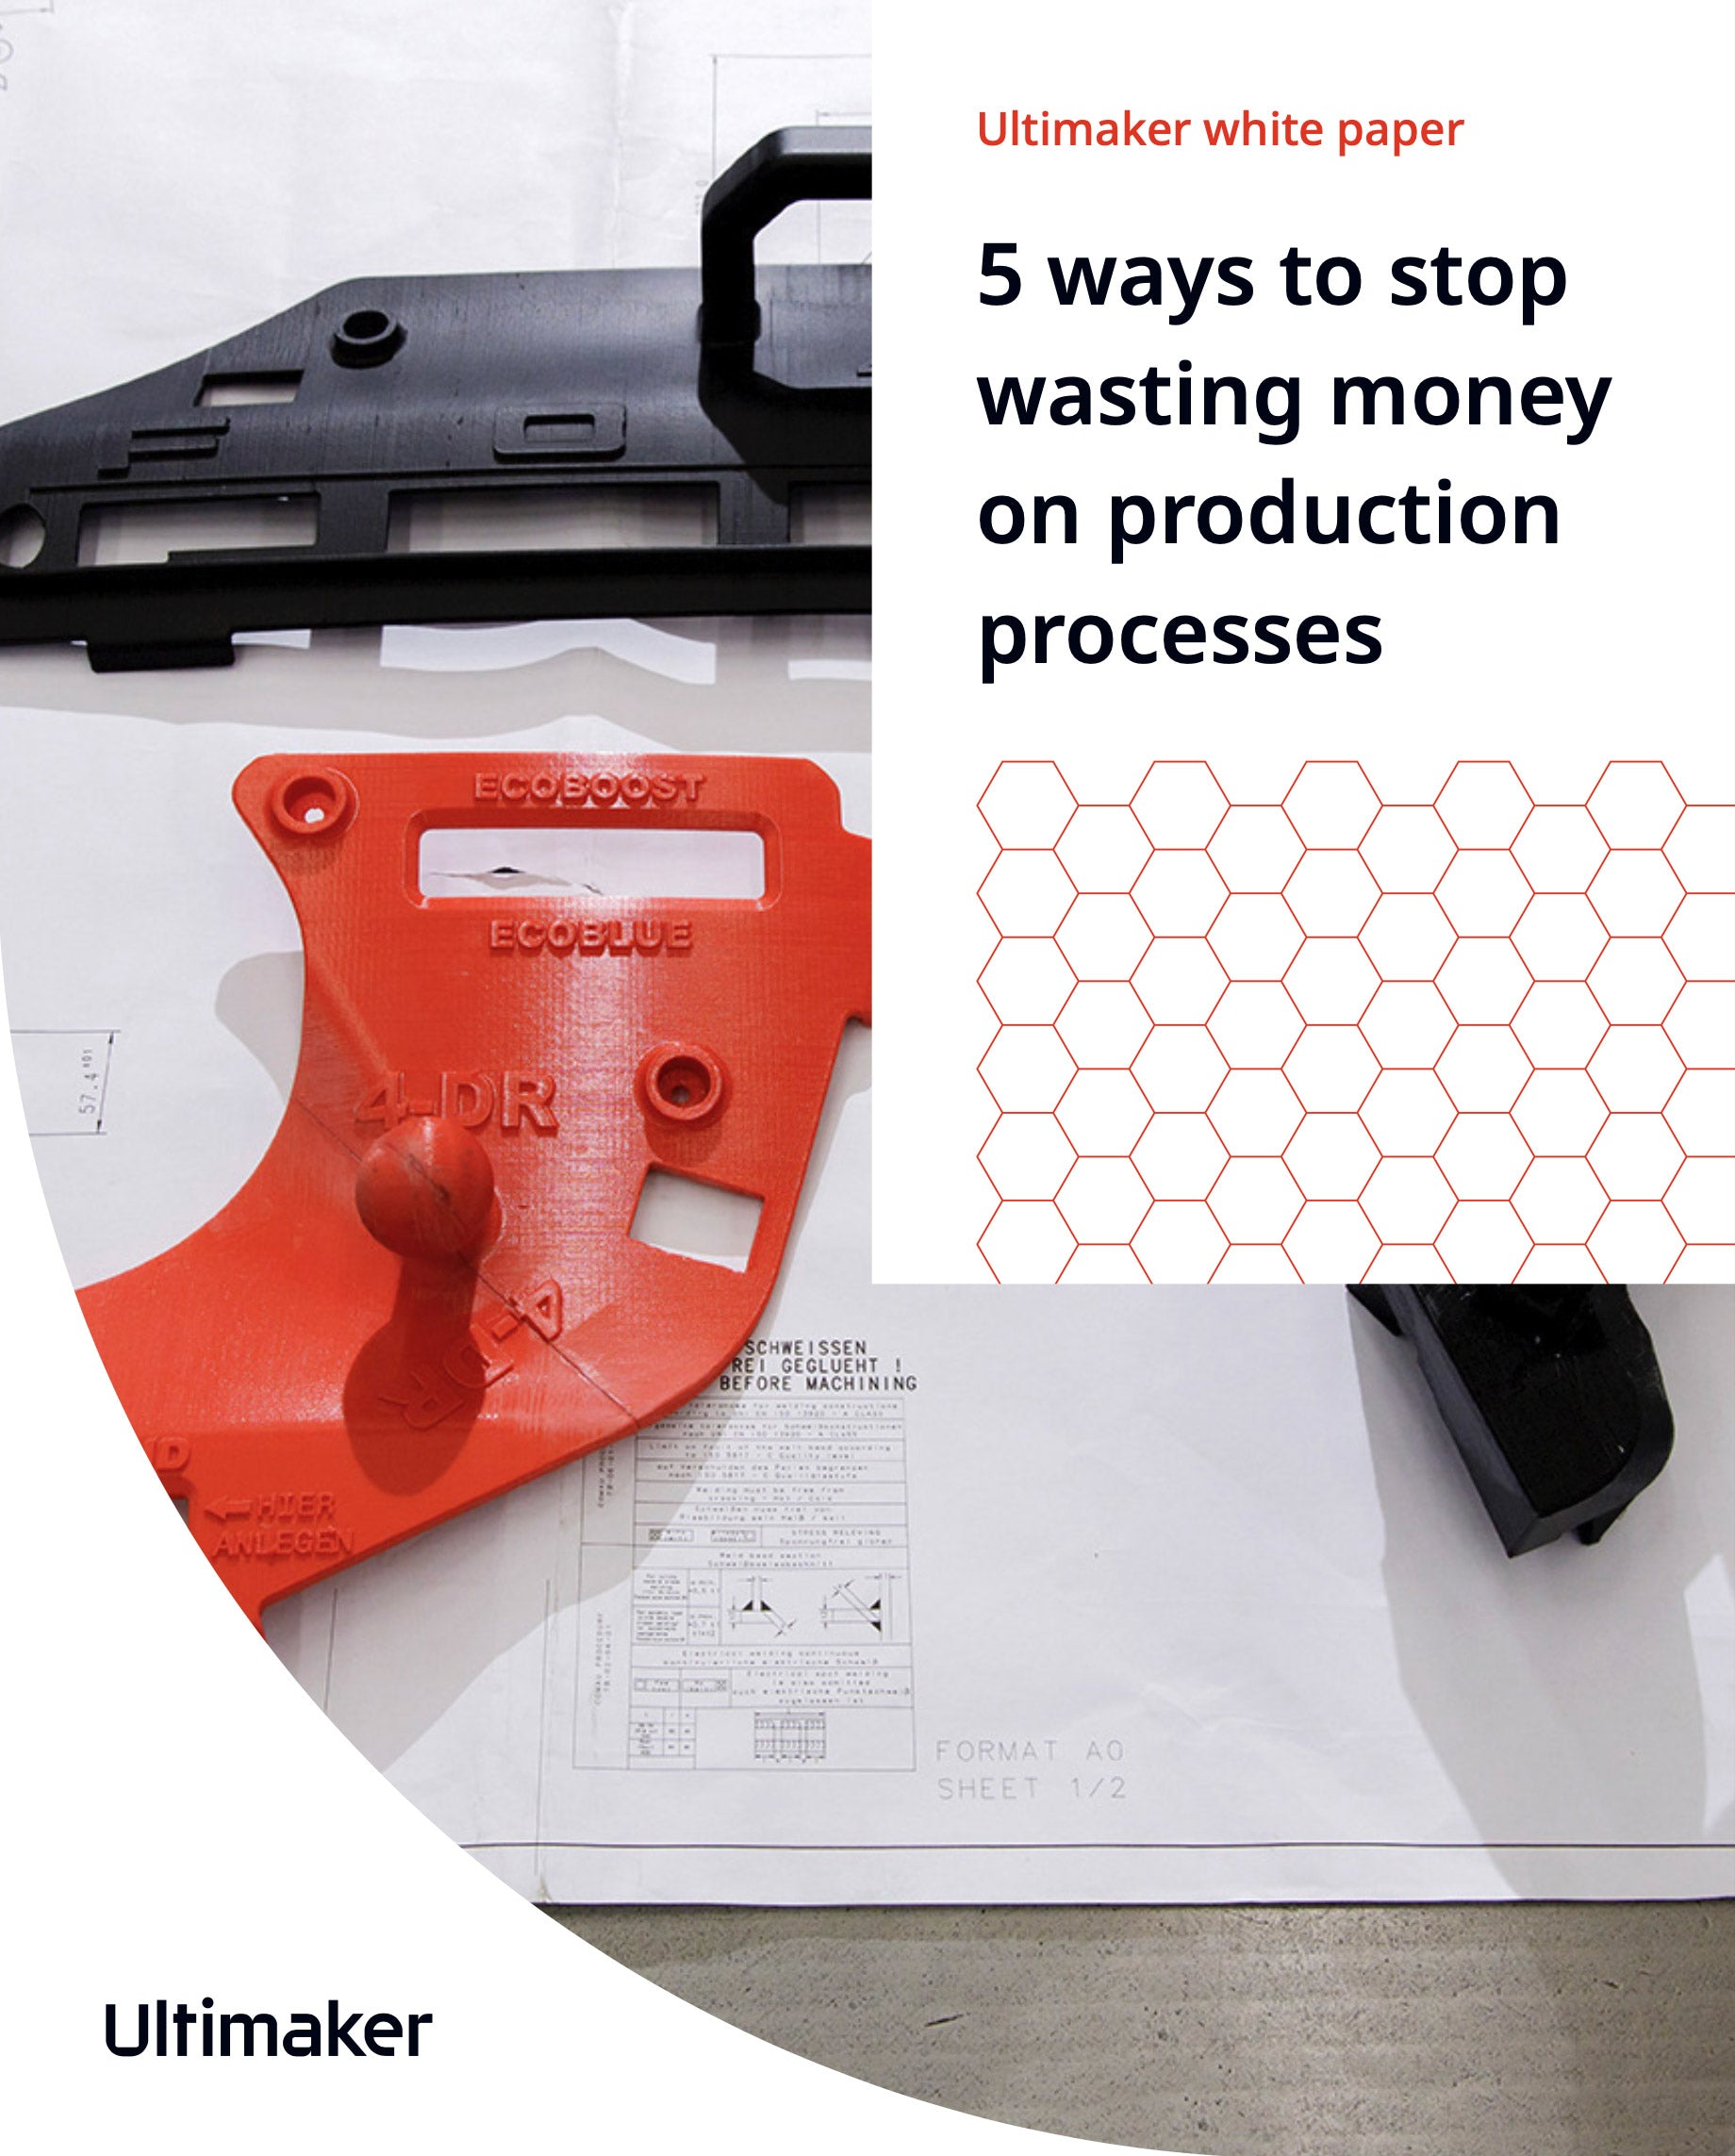 5 ways to stop wasting money on production processes white paper front cover